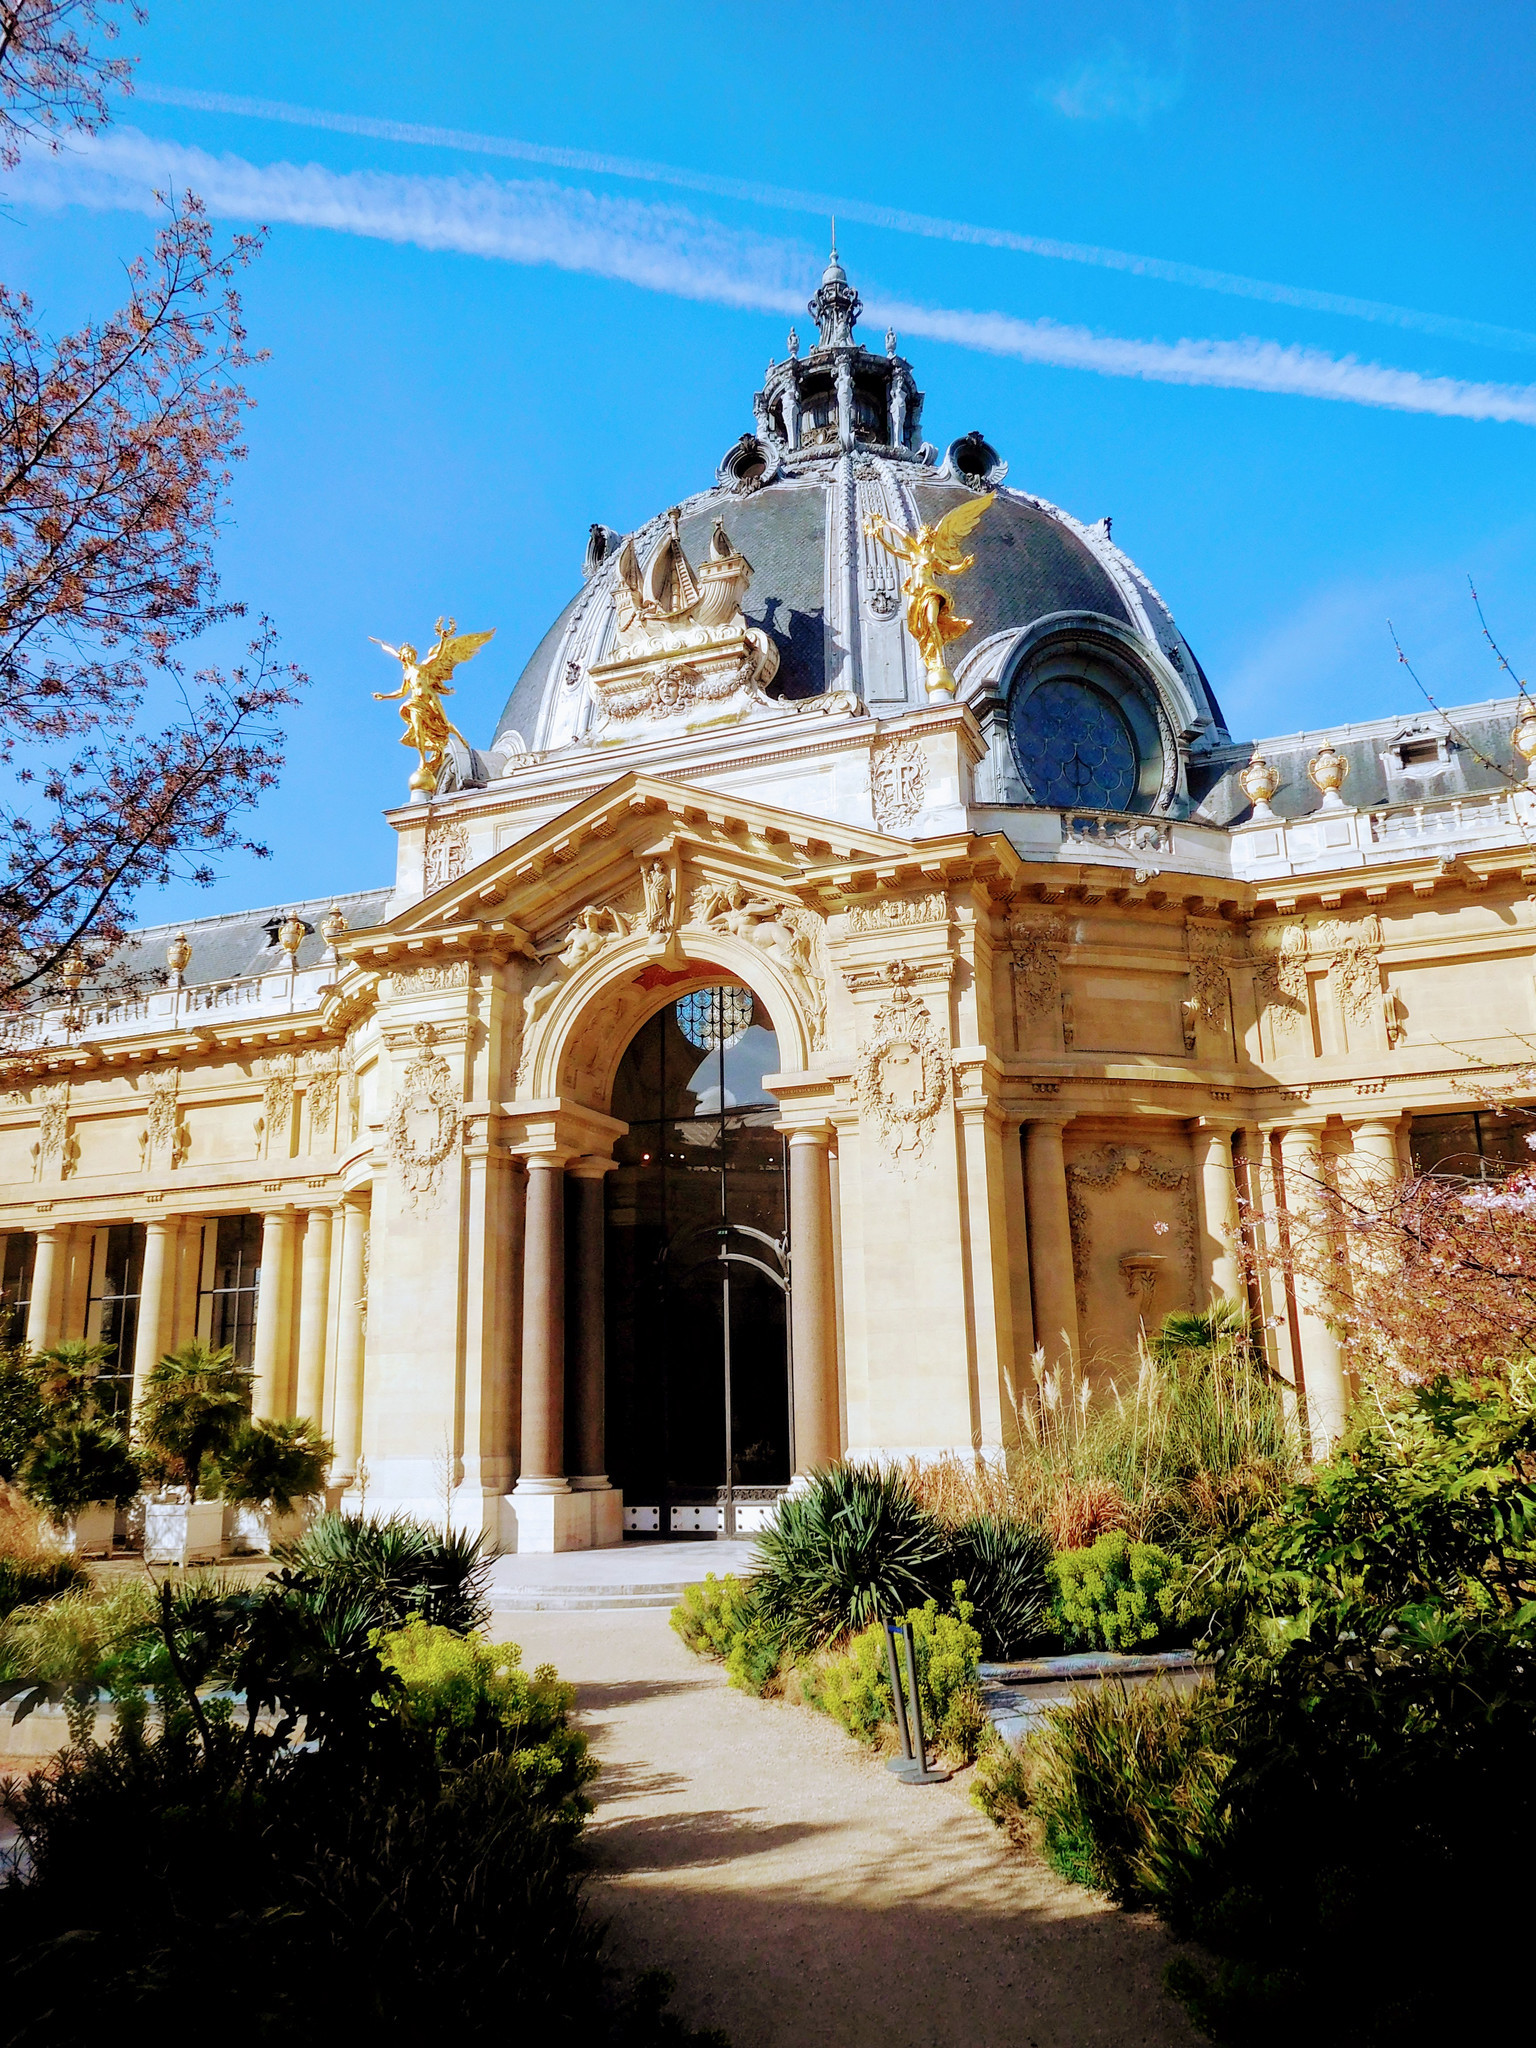 The beautiful Petit Palais contains paintings by Courbet, Monet and Delacroix..